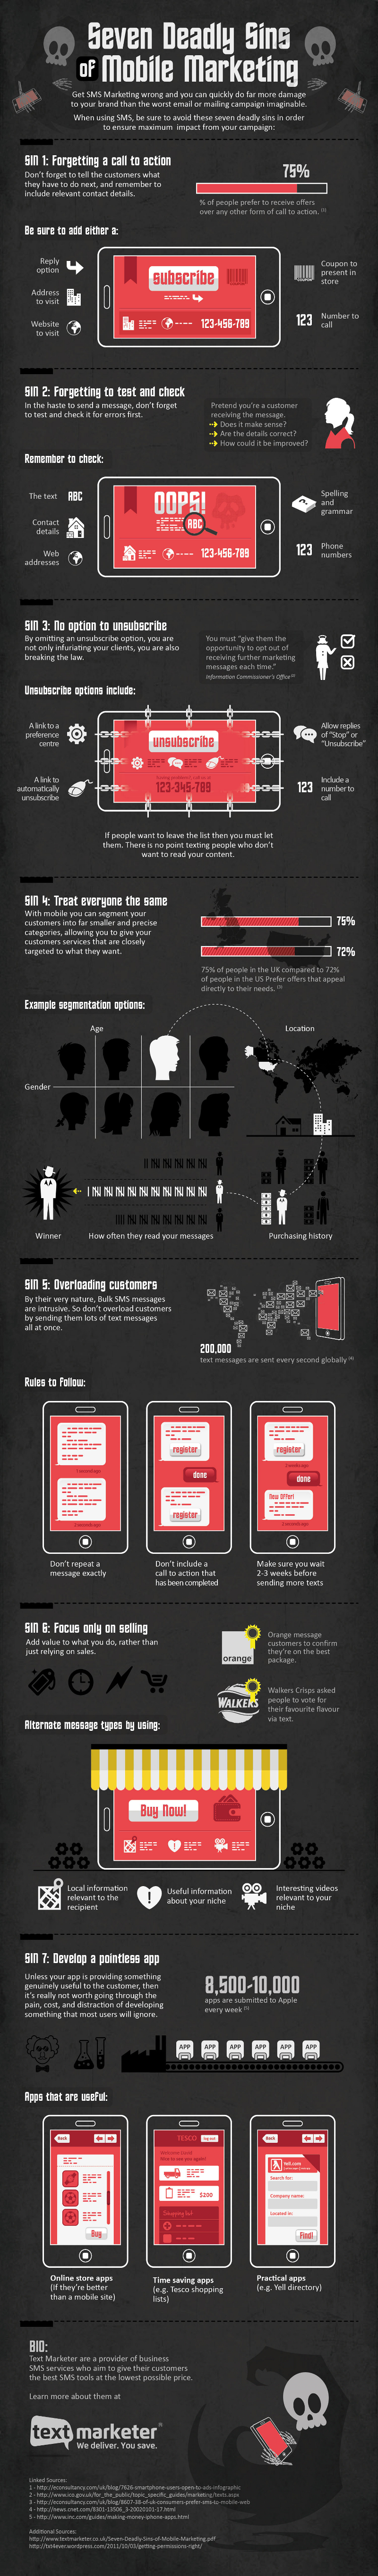 Mobile-Marketing-Sins